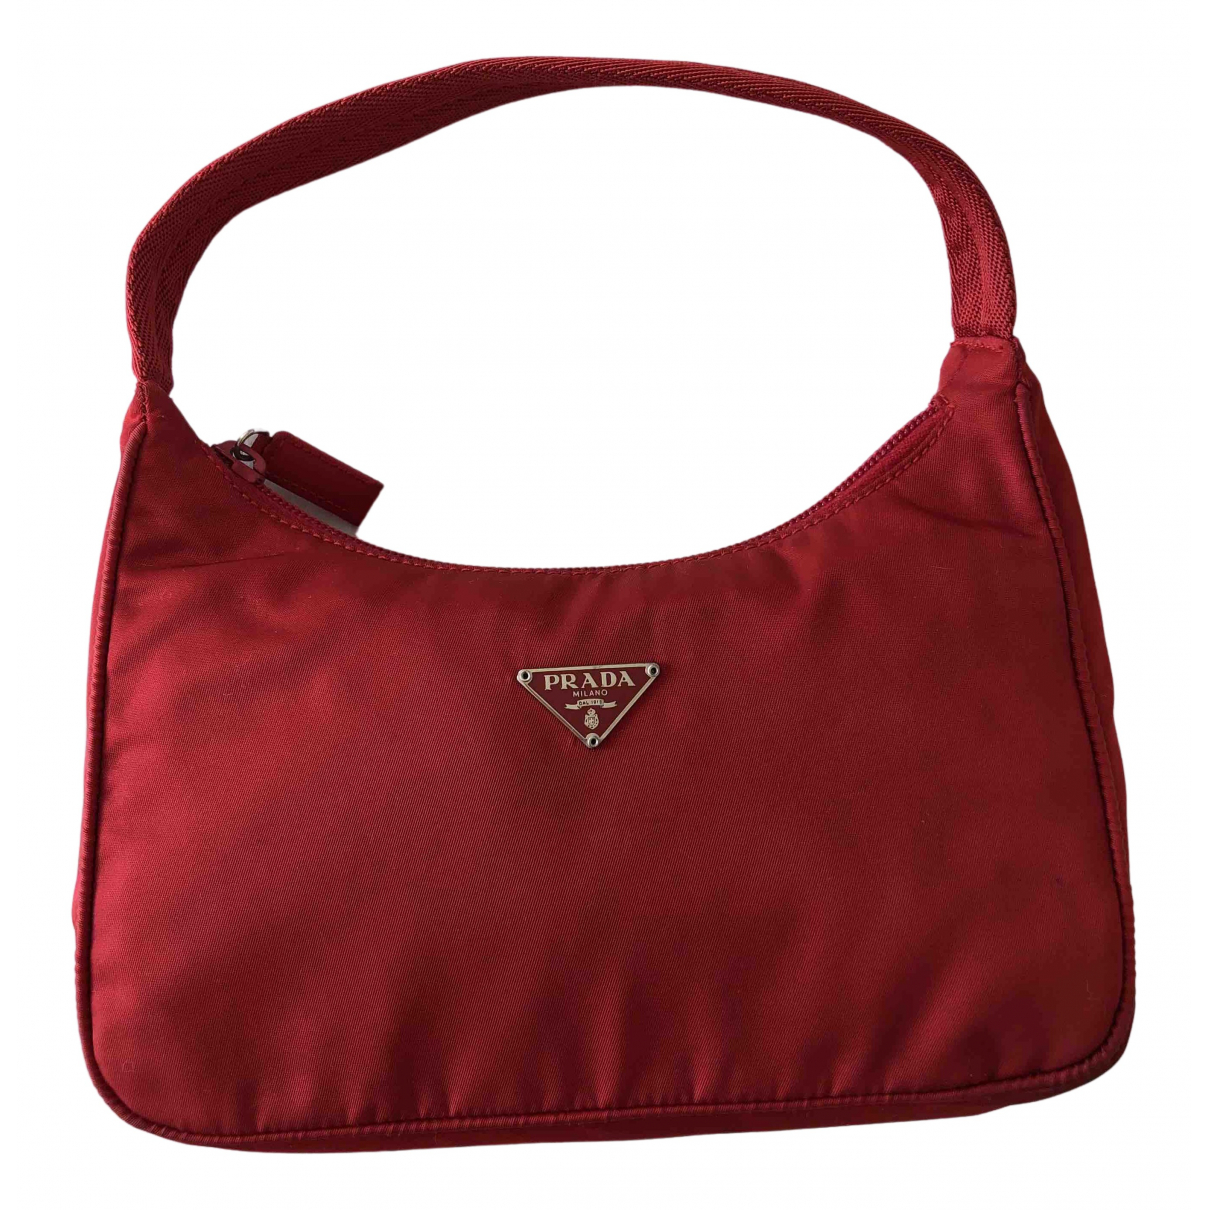 Prada \N Handtasche in  Rot Synthetik